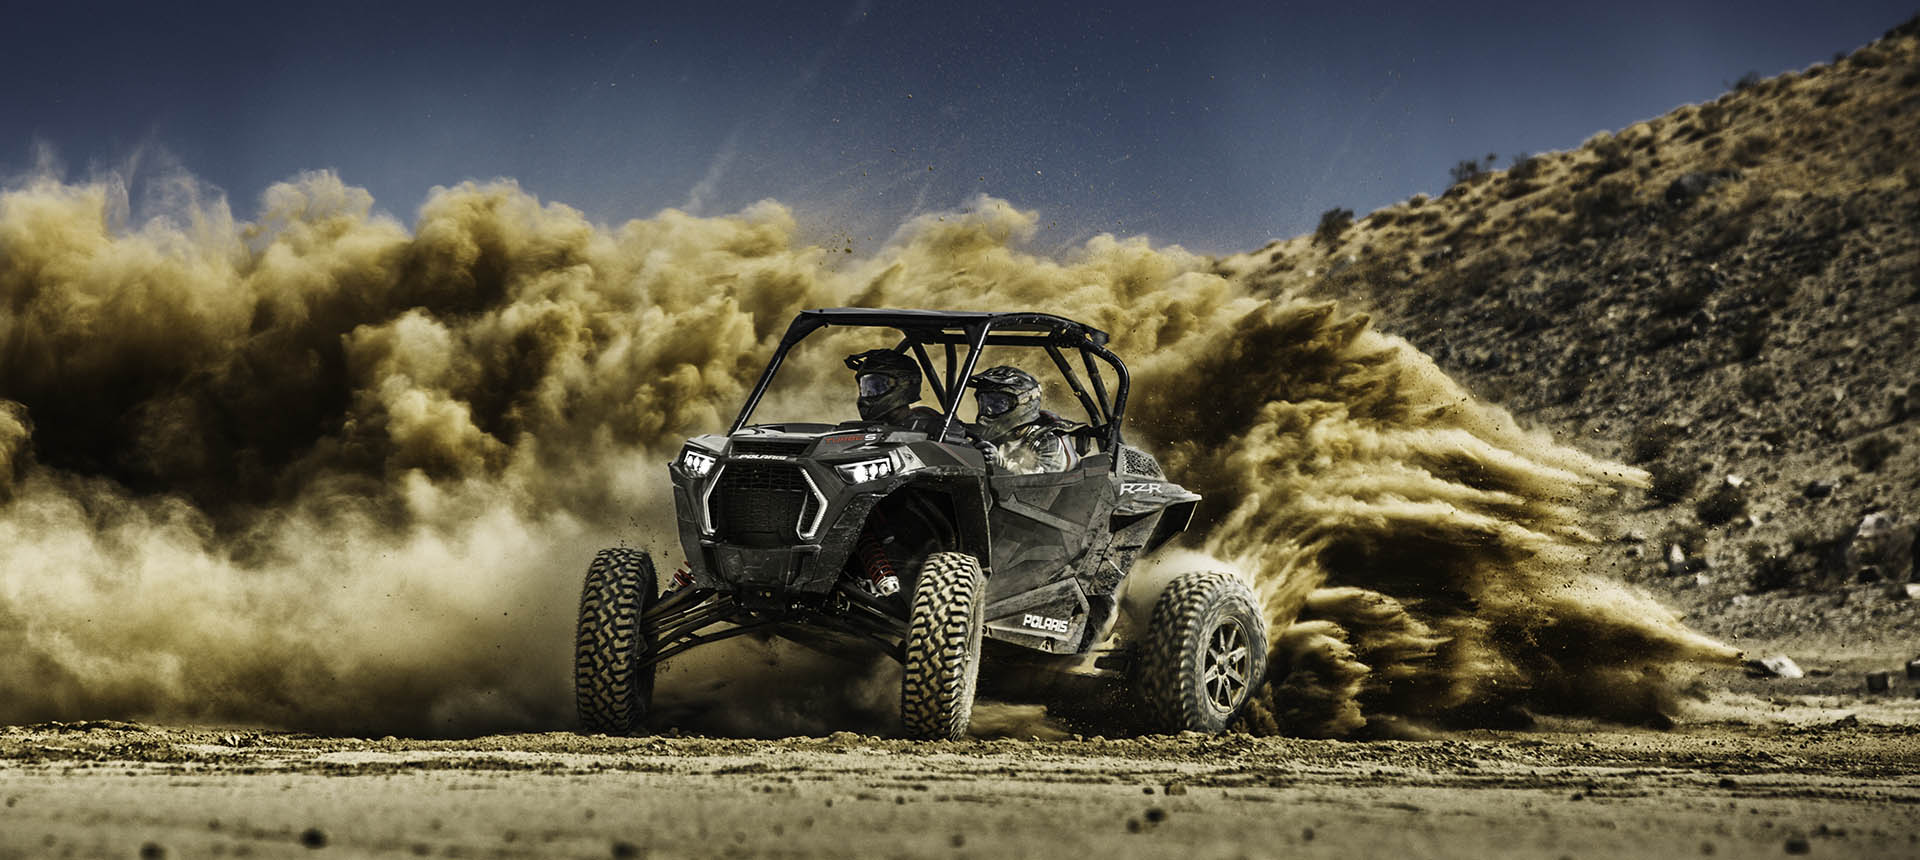 rzr-xp-turbo-s-titanium-metallic-media-1-lg